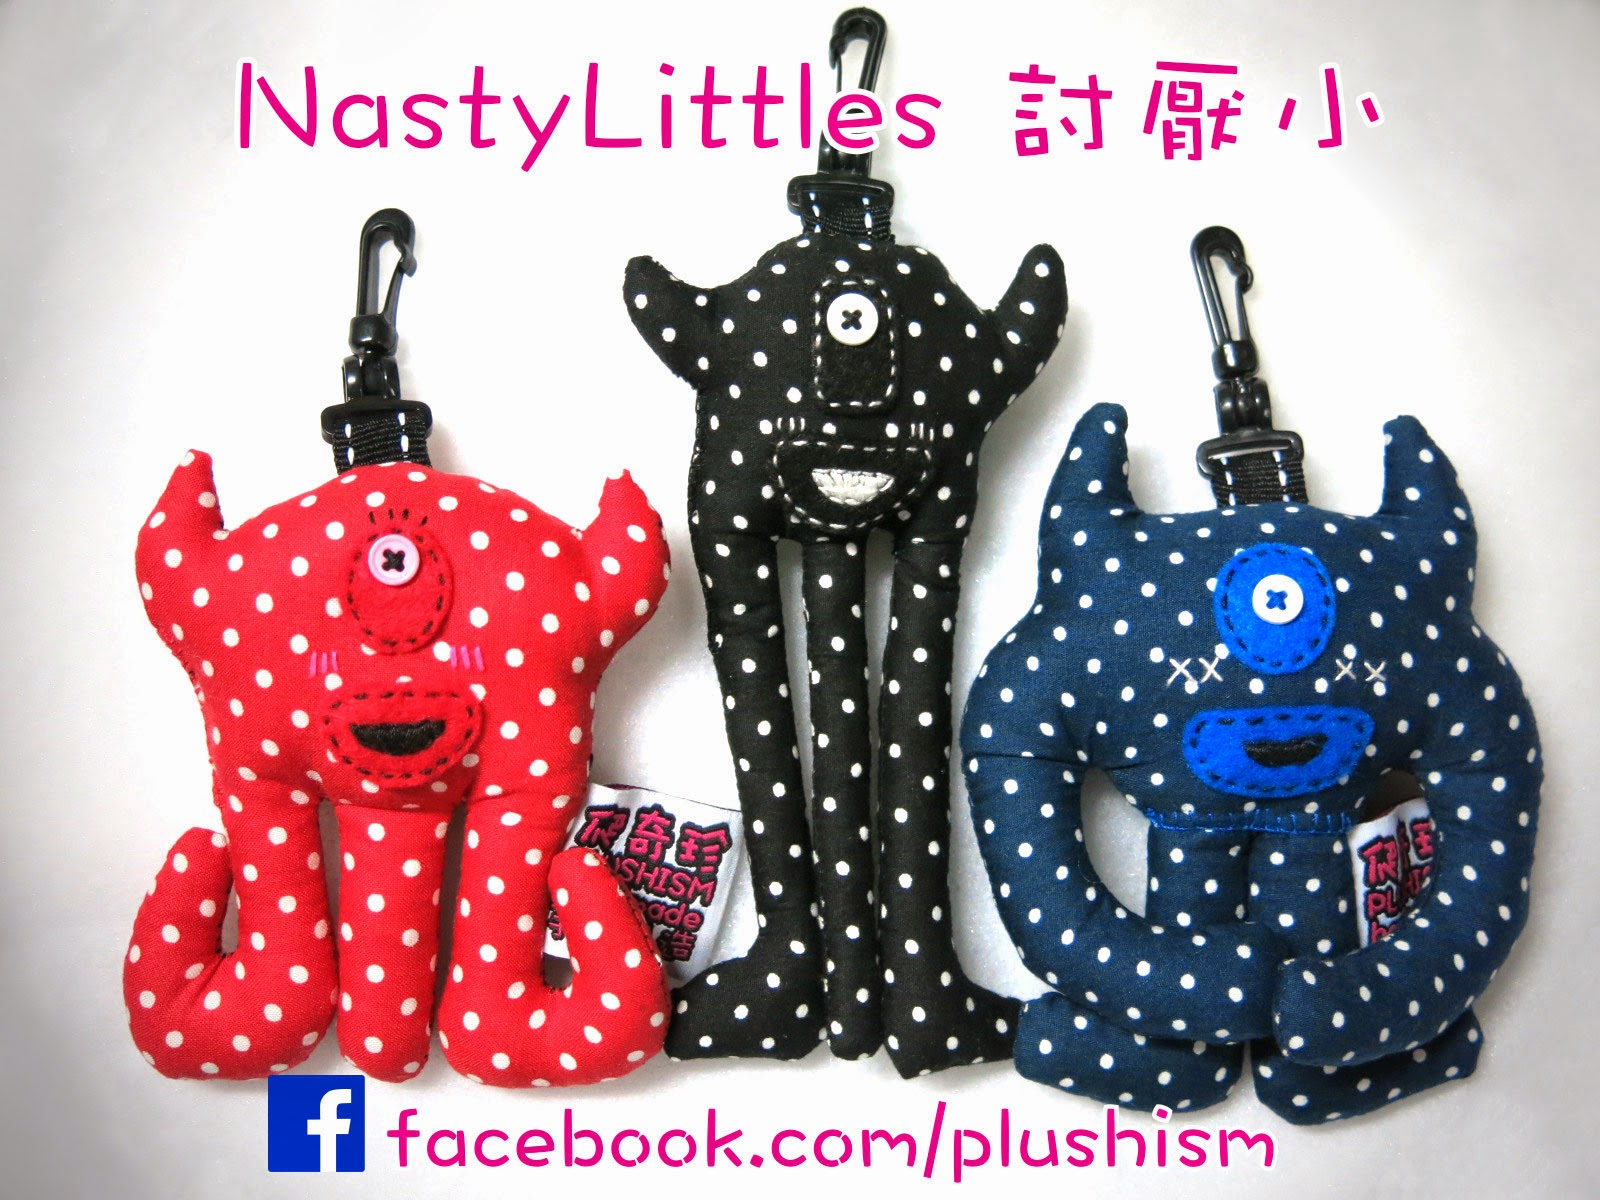 https://www.facebook.com/plushism